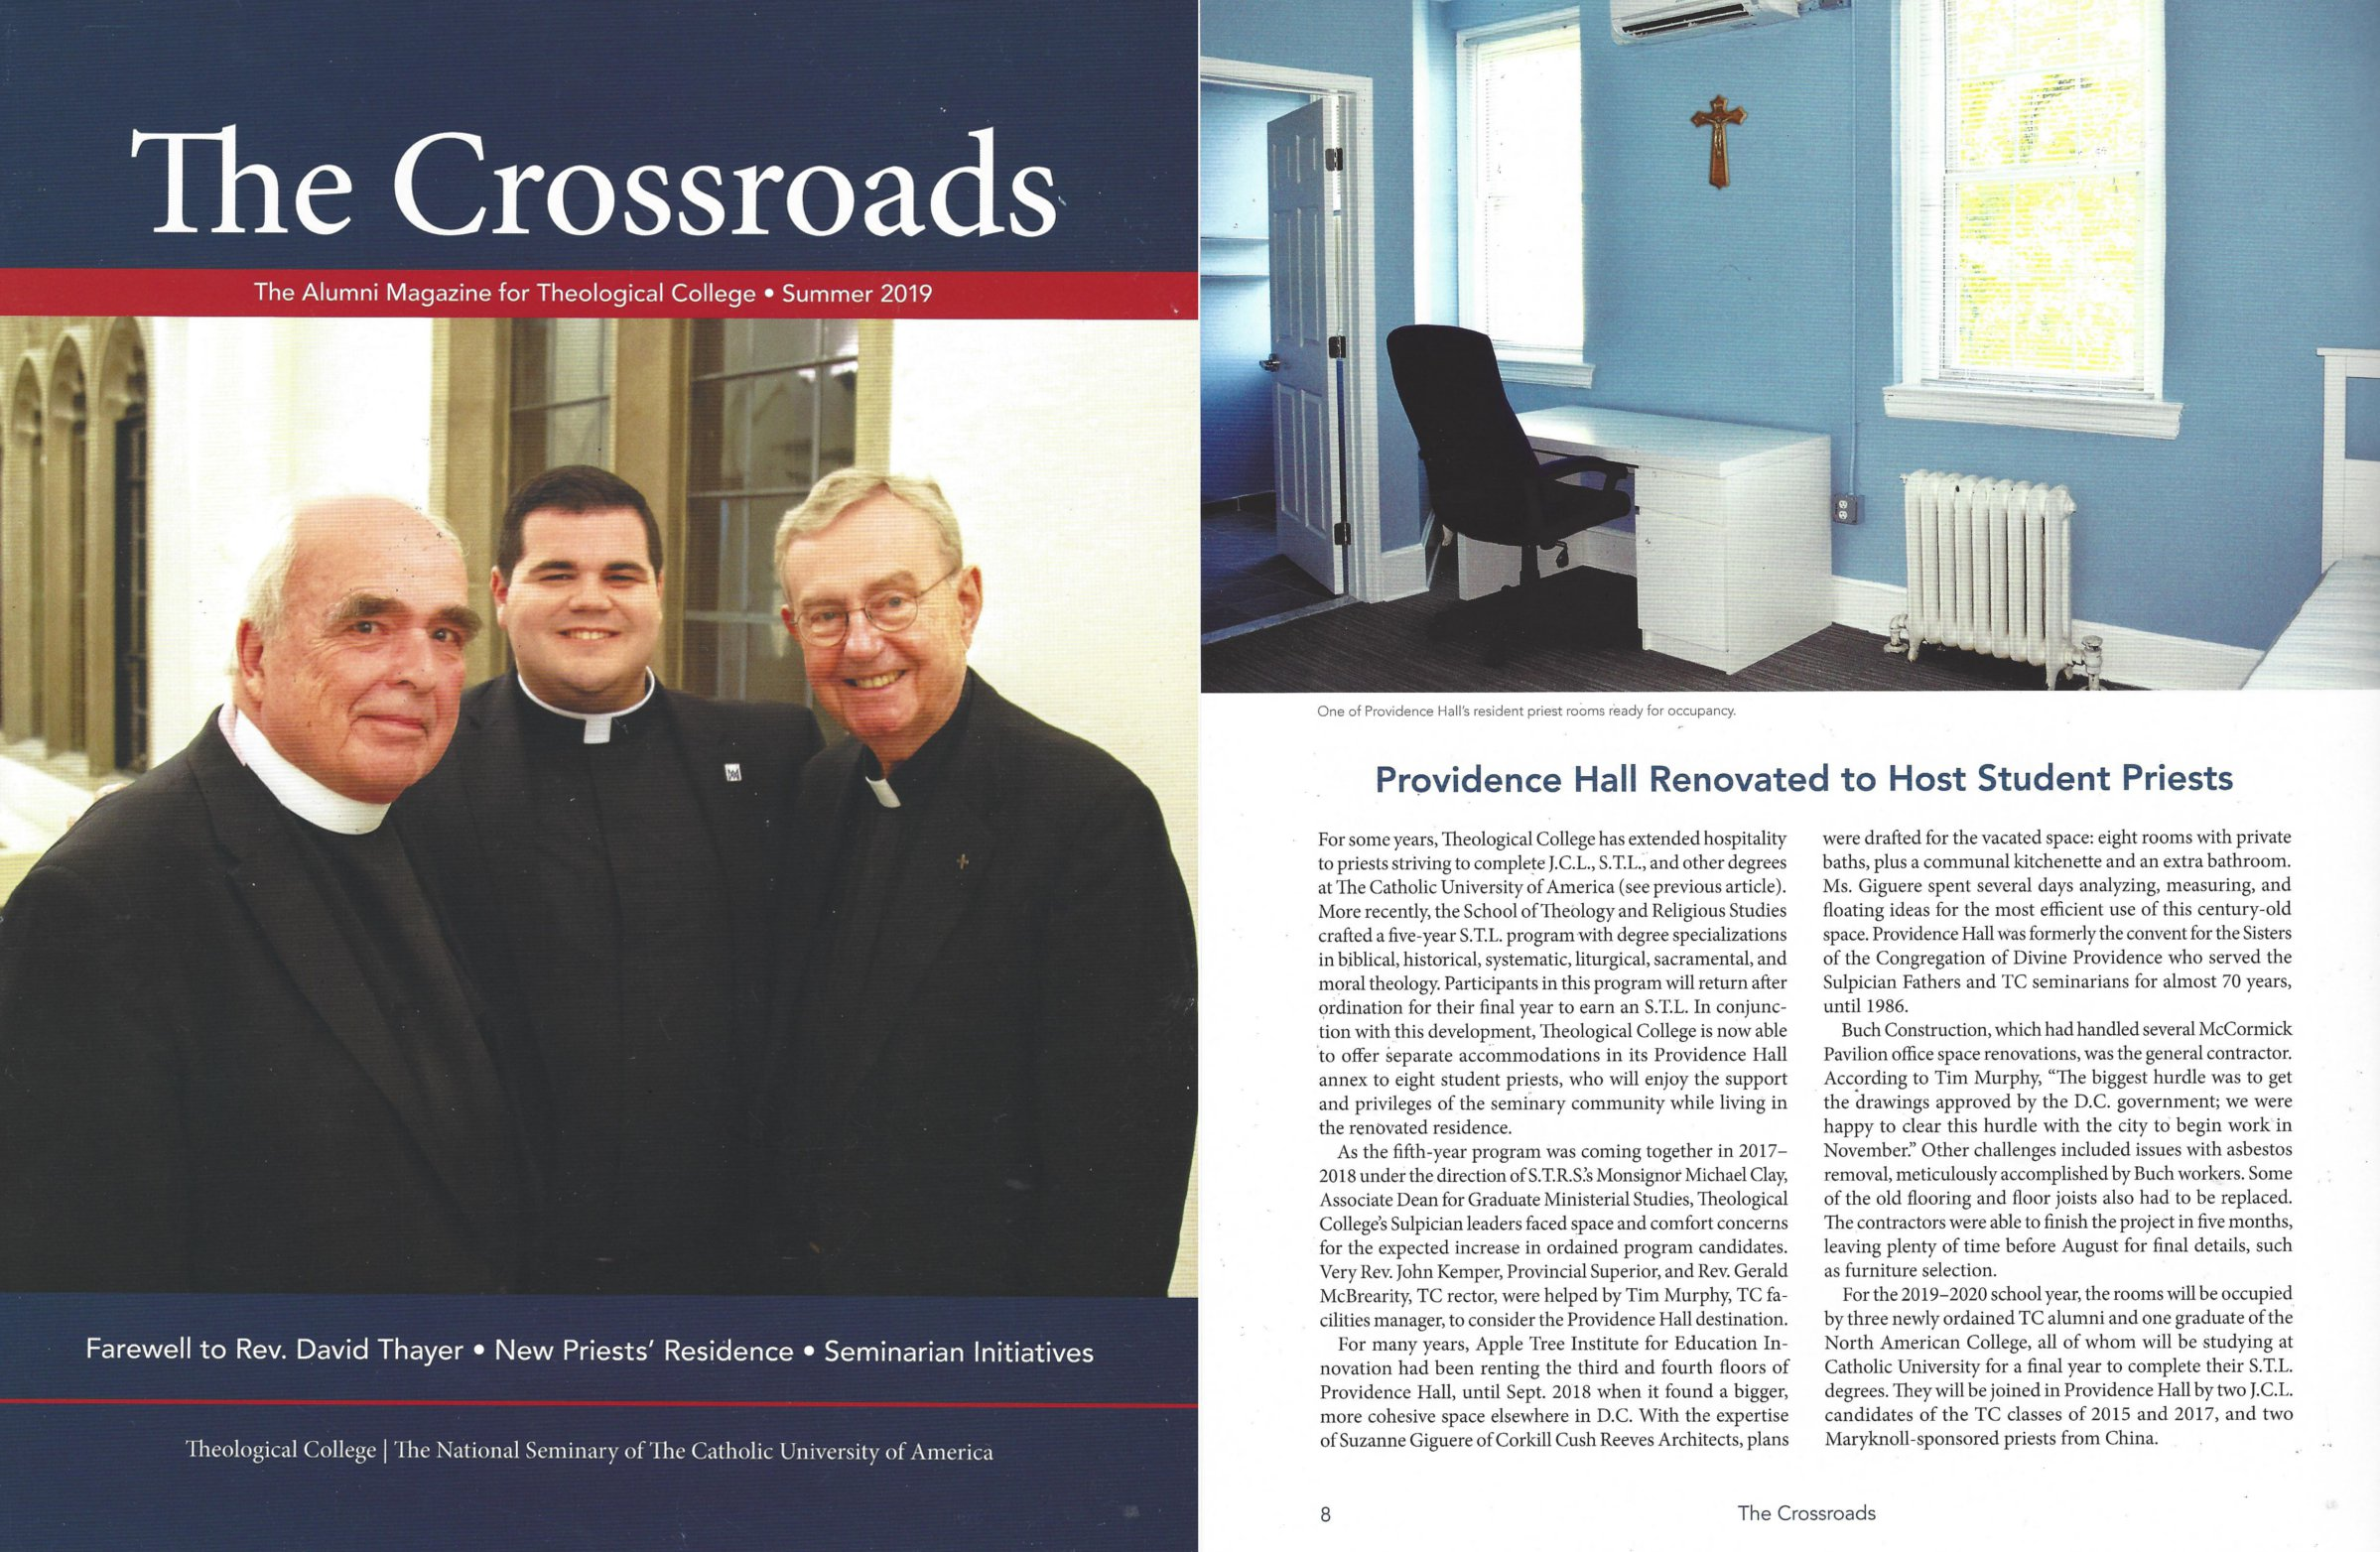 CUA Theological College Renovations Completed in time for Fall '19 School Start